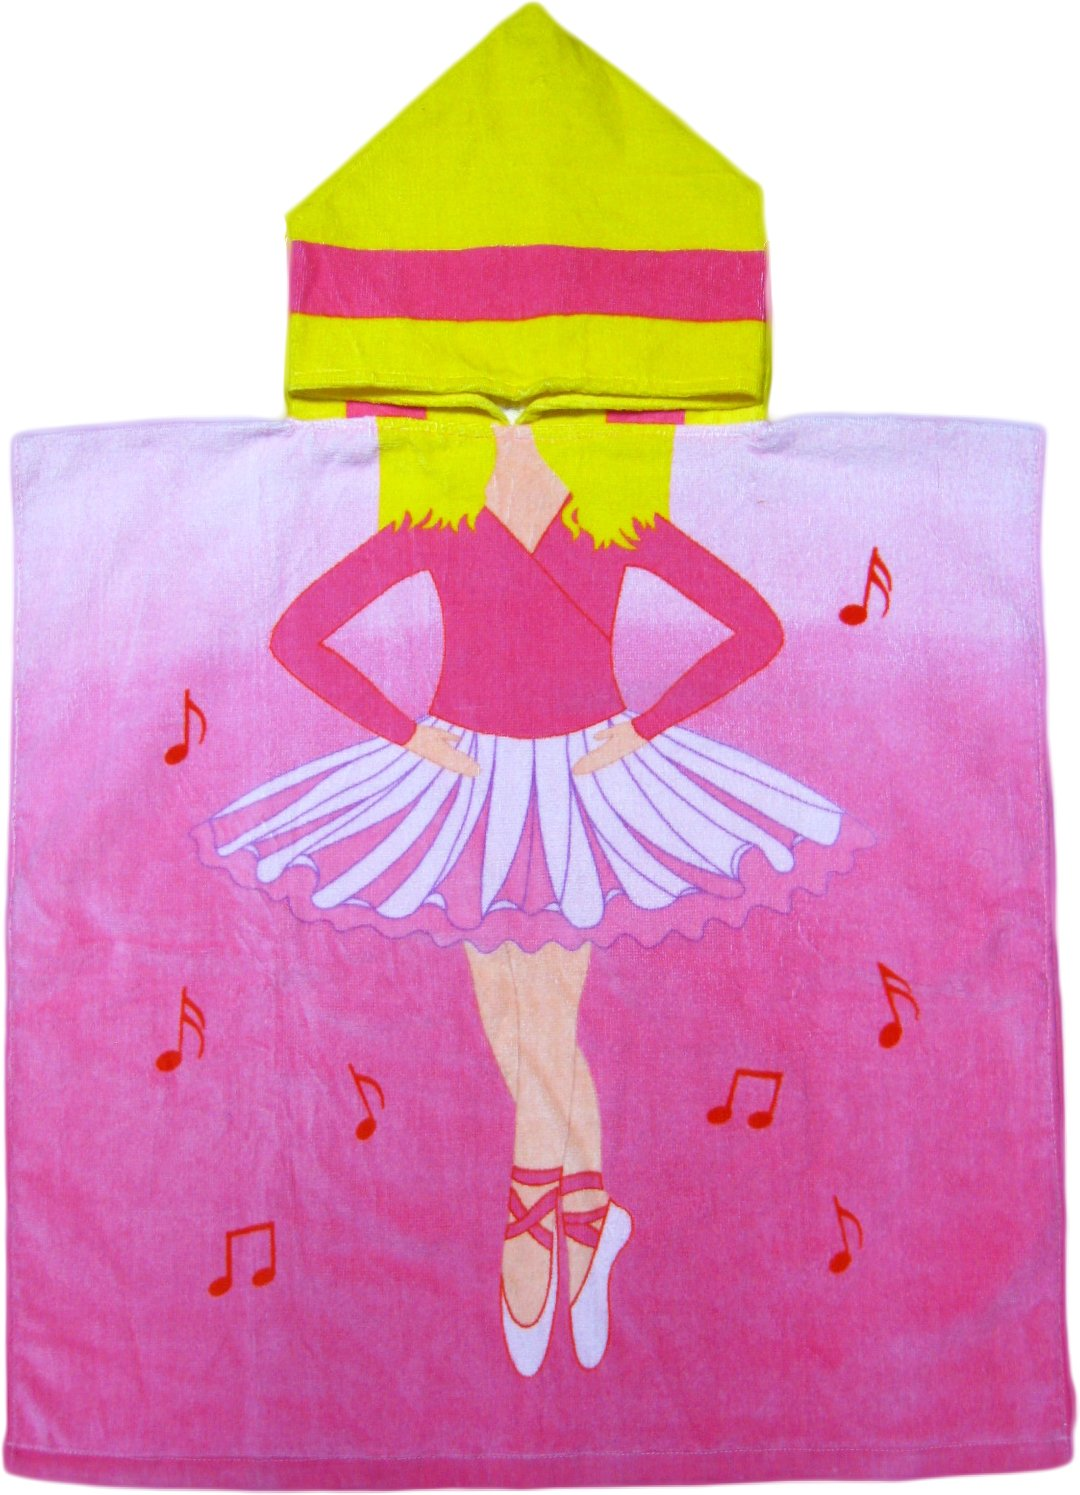 Kreative Kids Ballerina 100% Cotton Poncho Style Hooded Bath & Beach Towel with Colorful Double Sized Design T6513